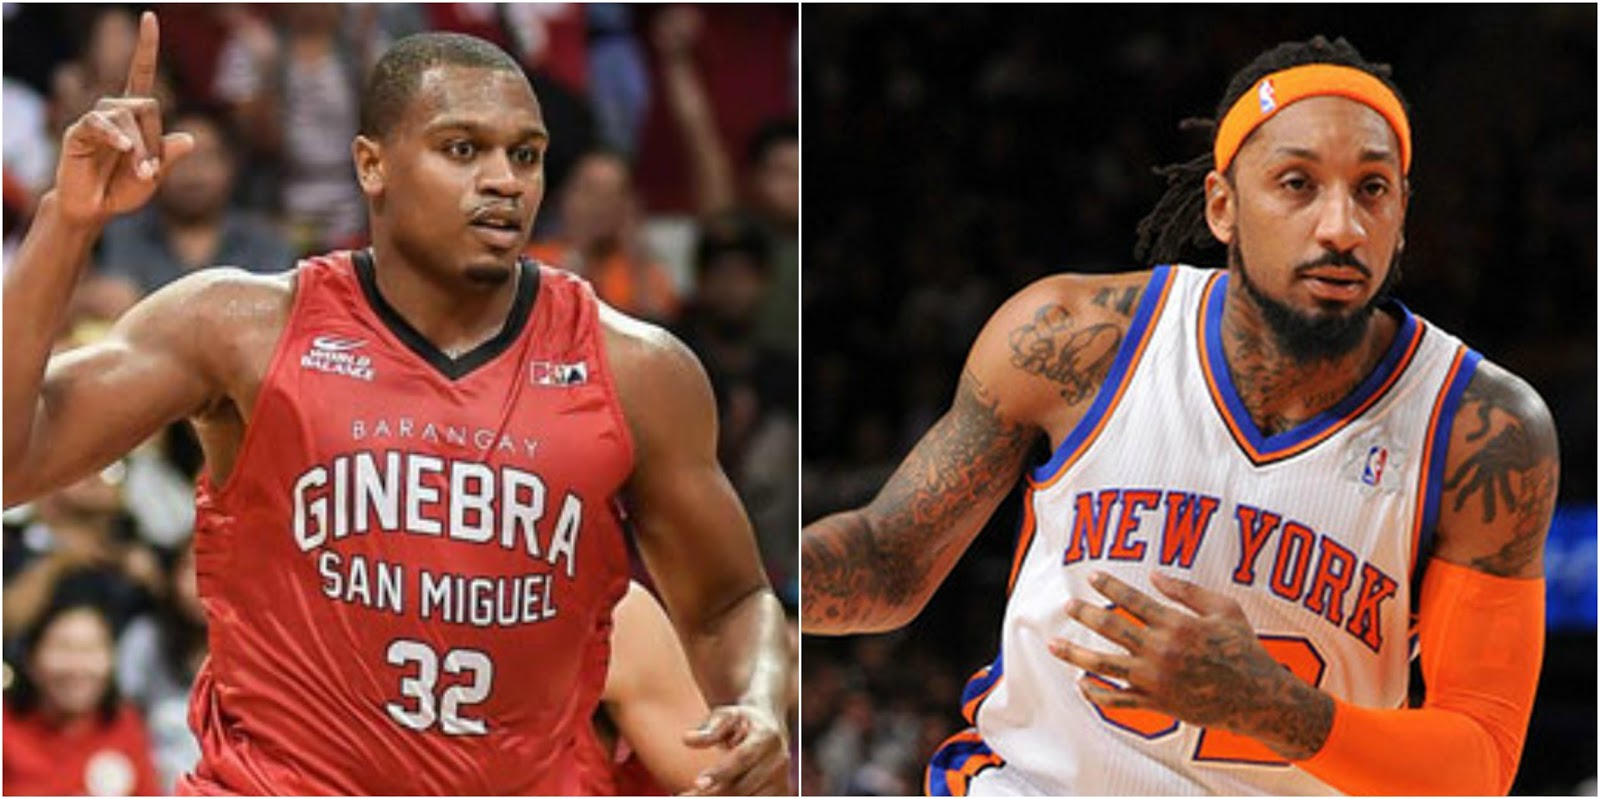 Brownlee and Balkman to reinforce Tanduay Alab Pilipinas